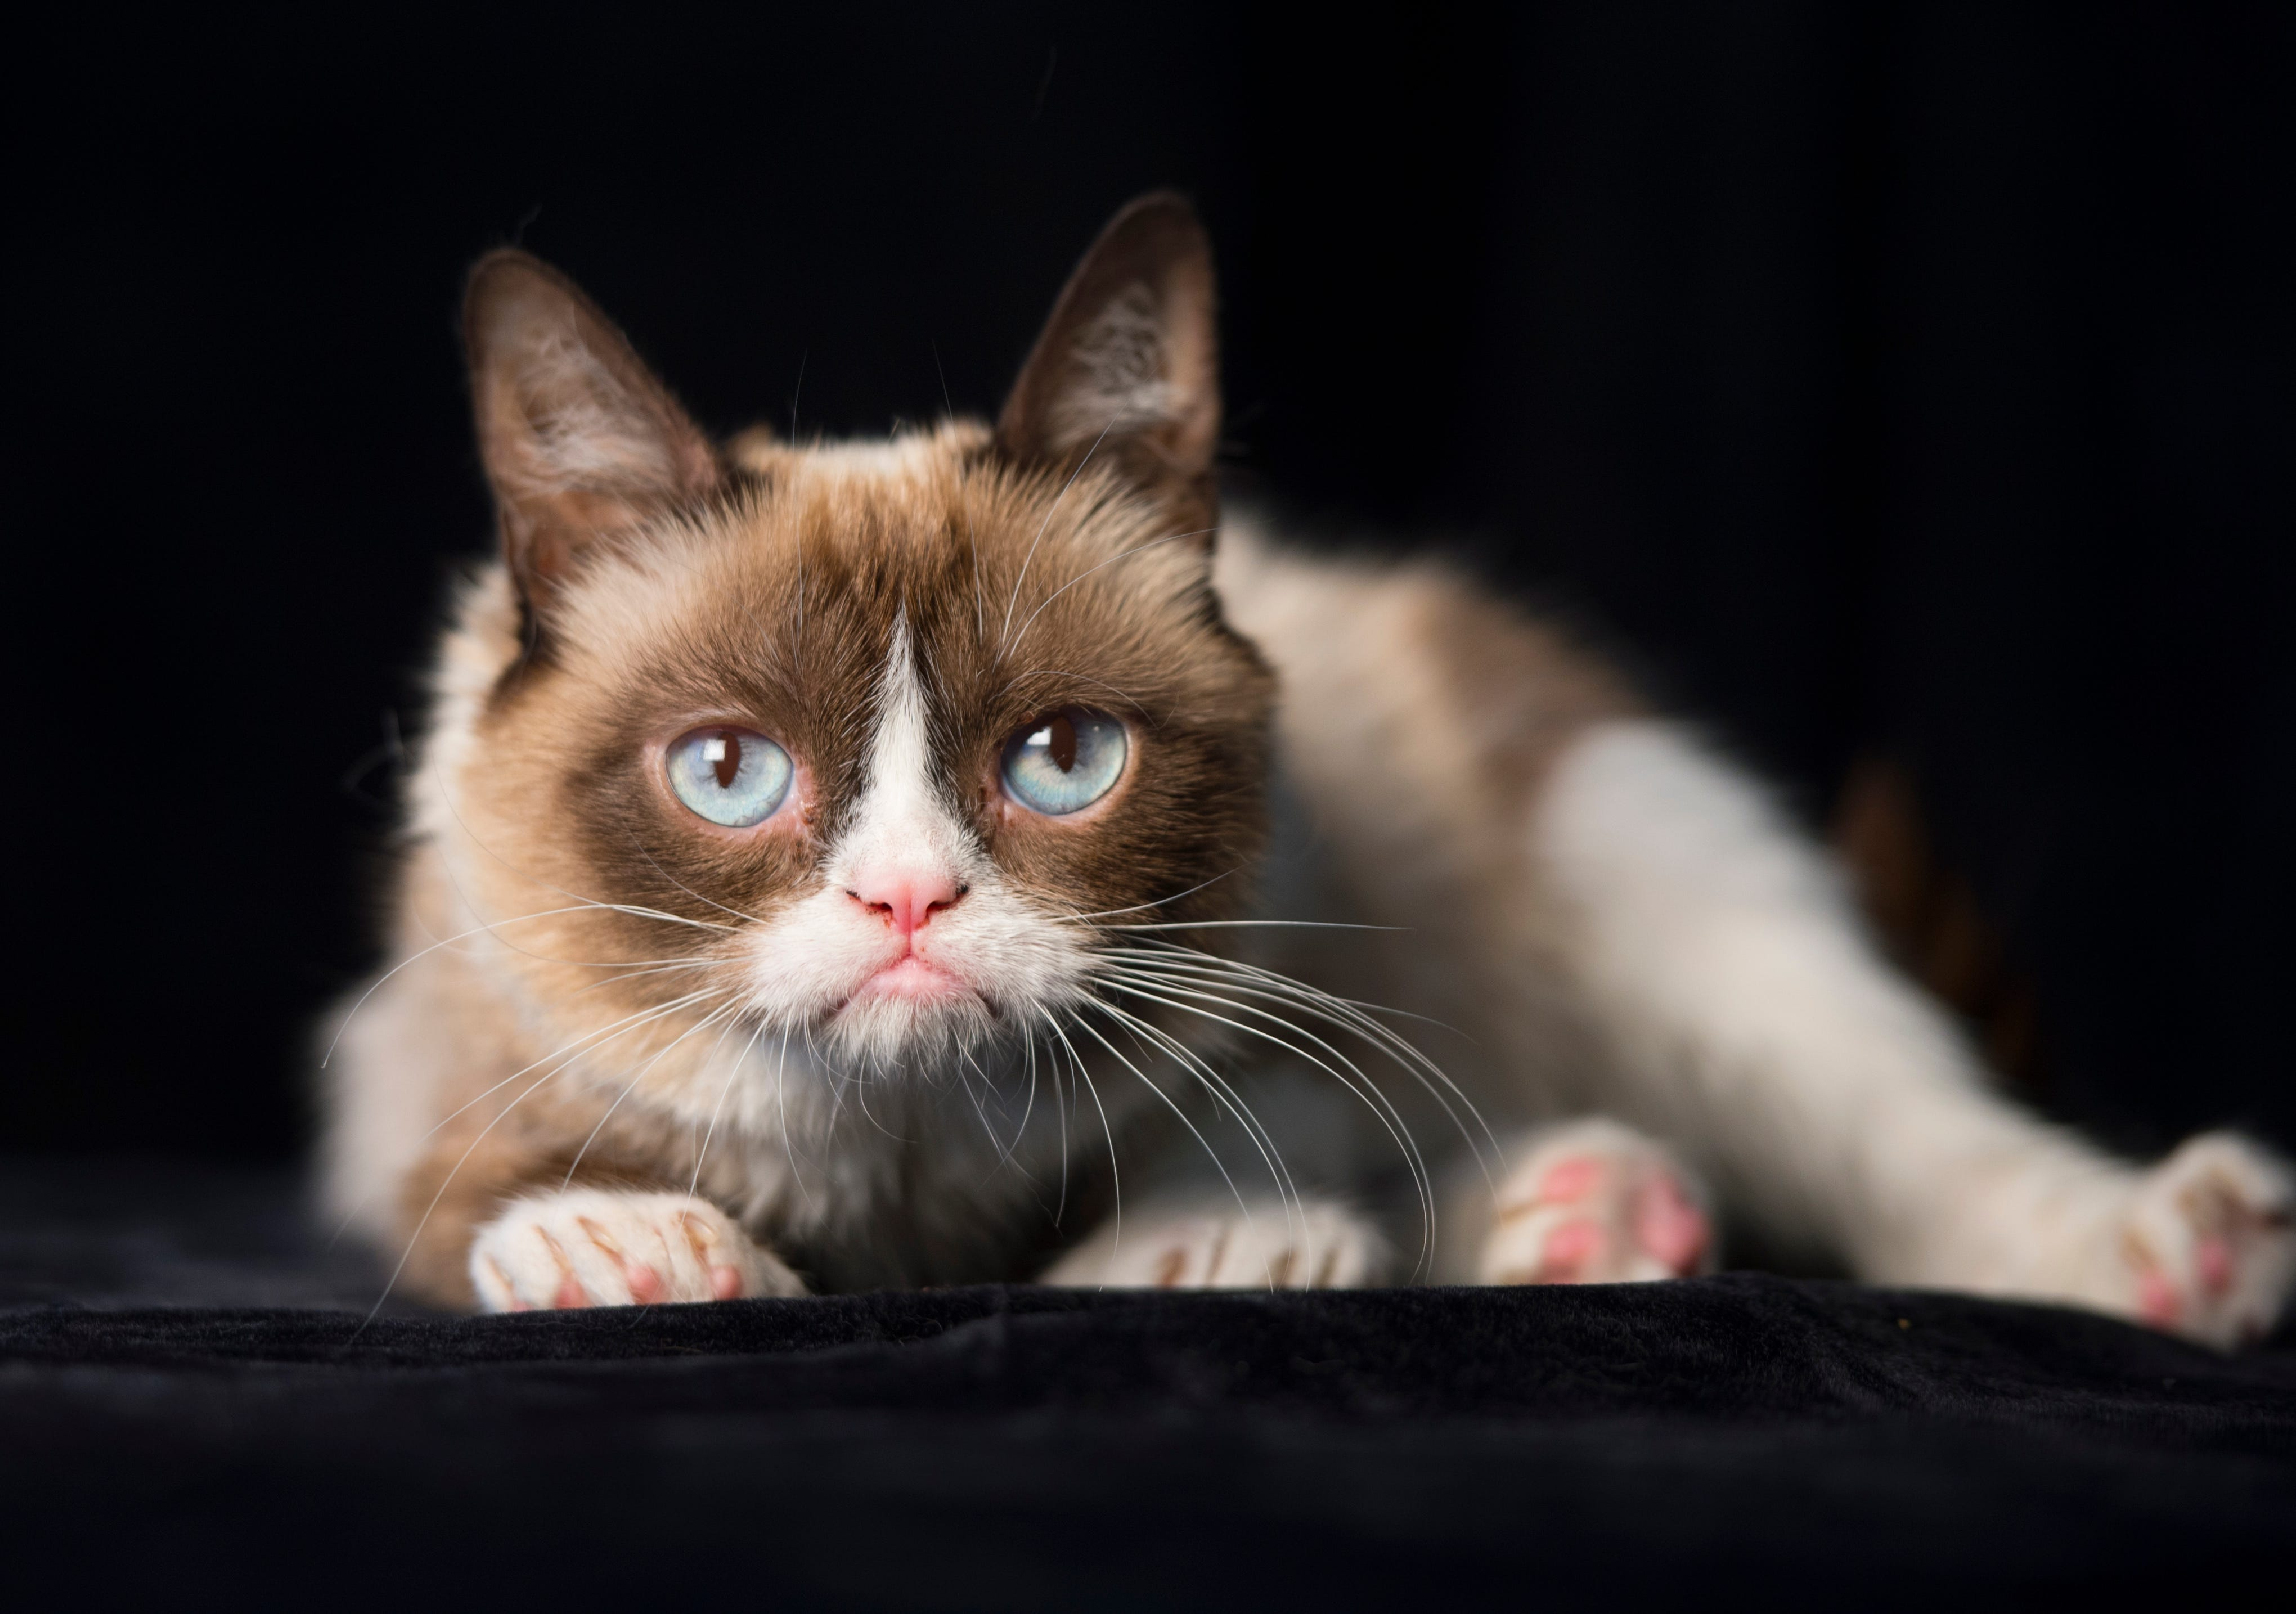 Grumpy Cat, beloved meme star, dies at age 7: 'Some days are grumpier than others'